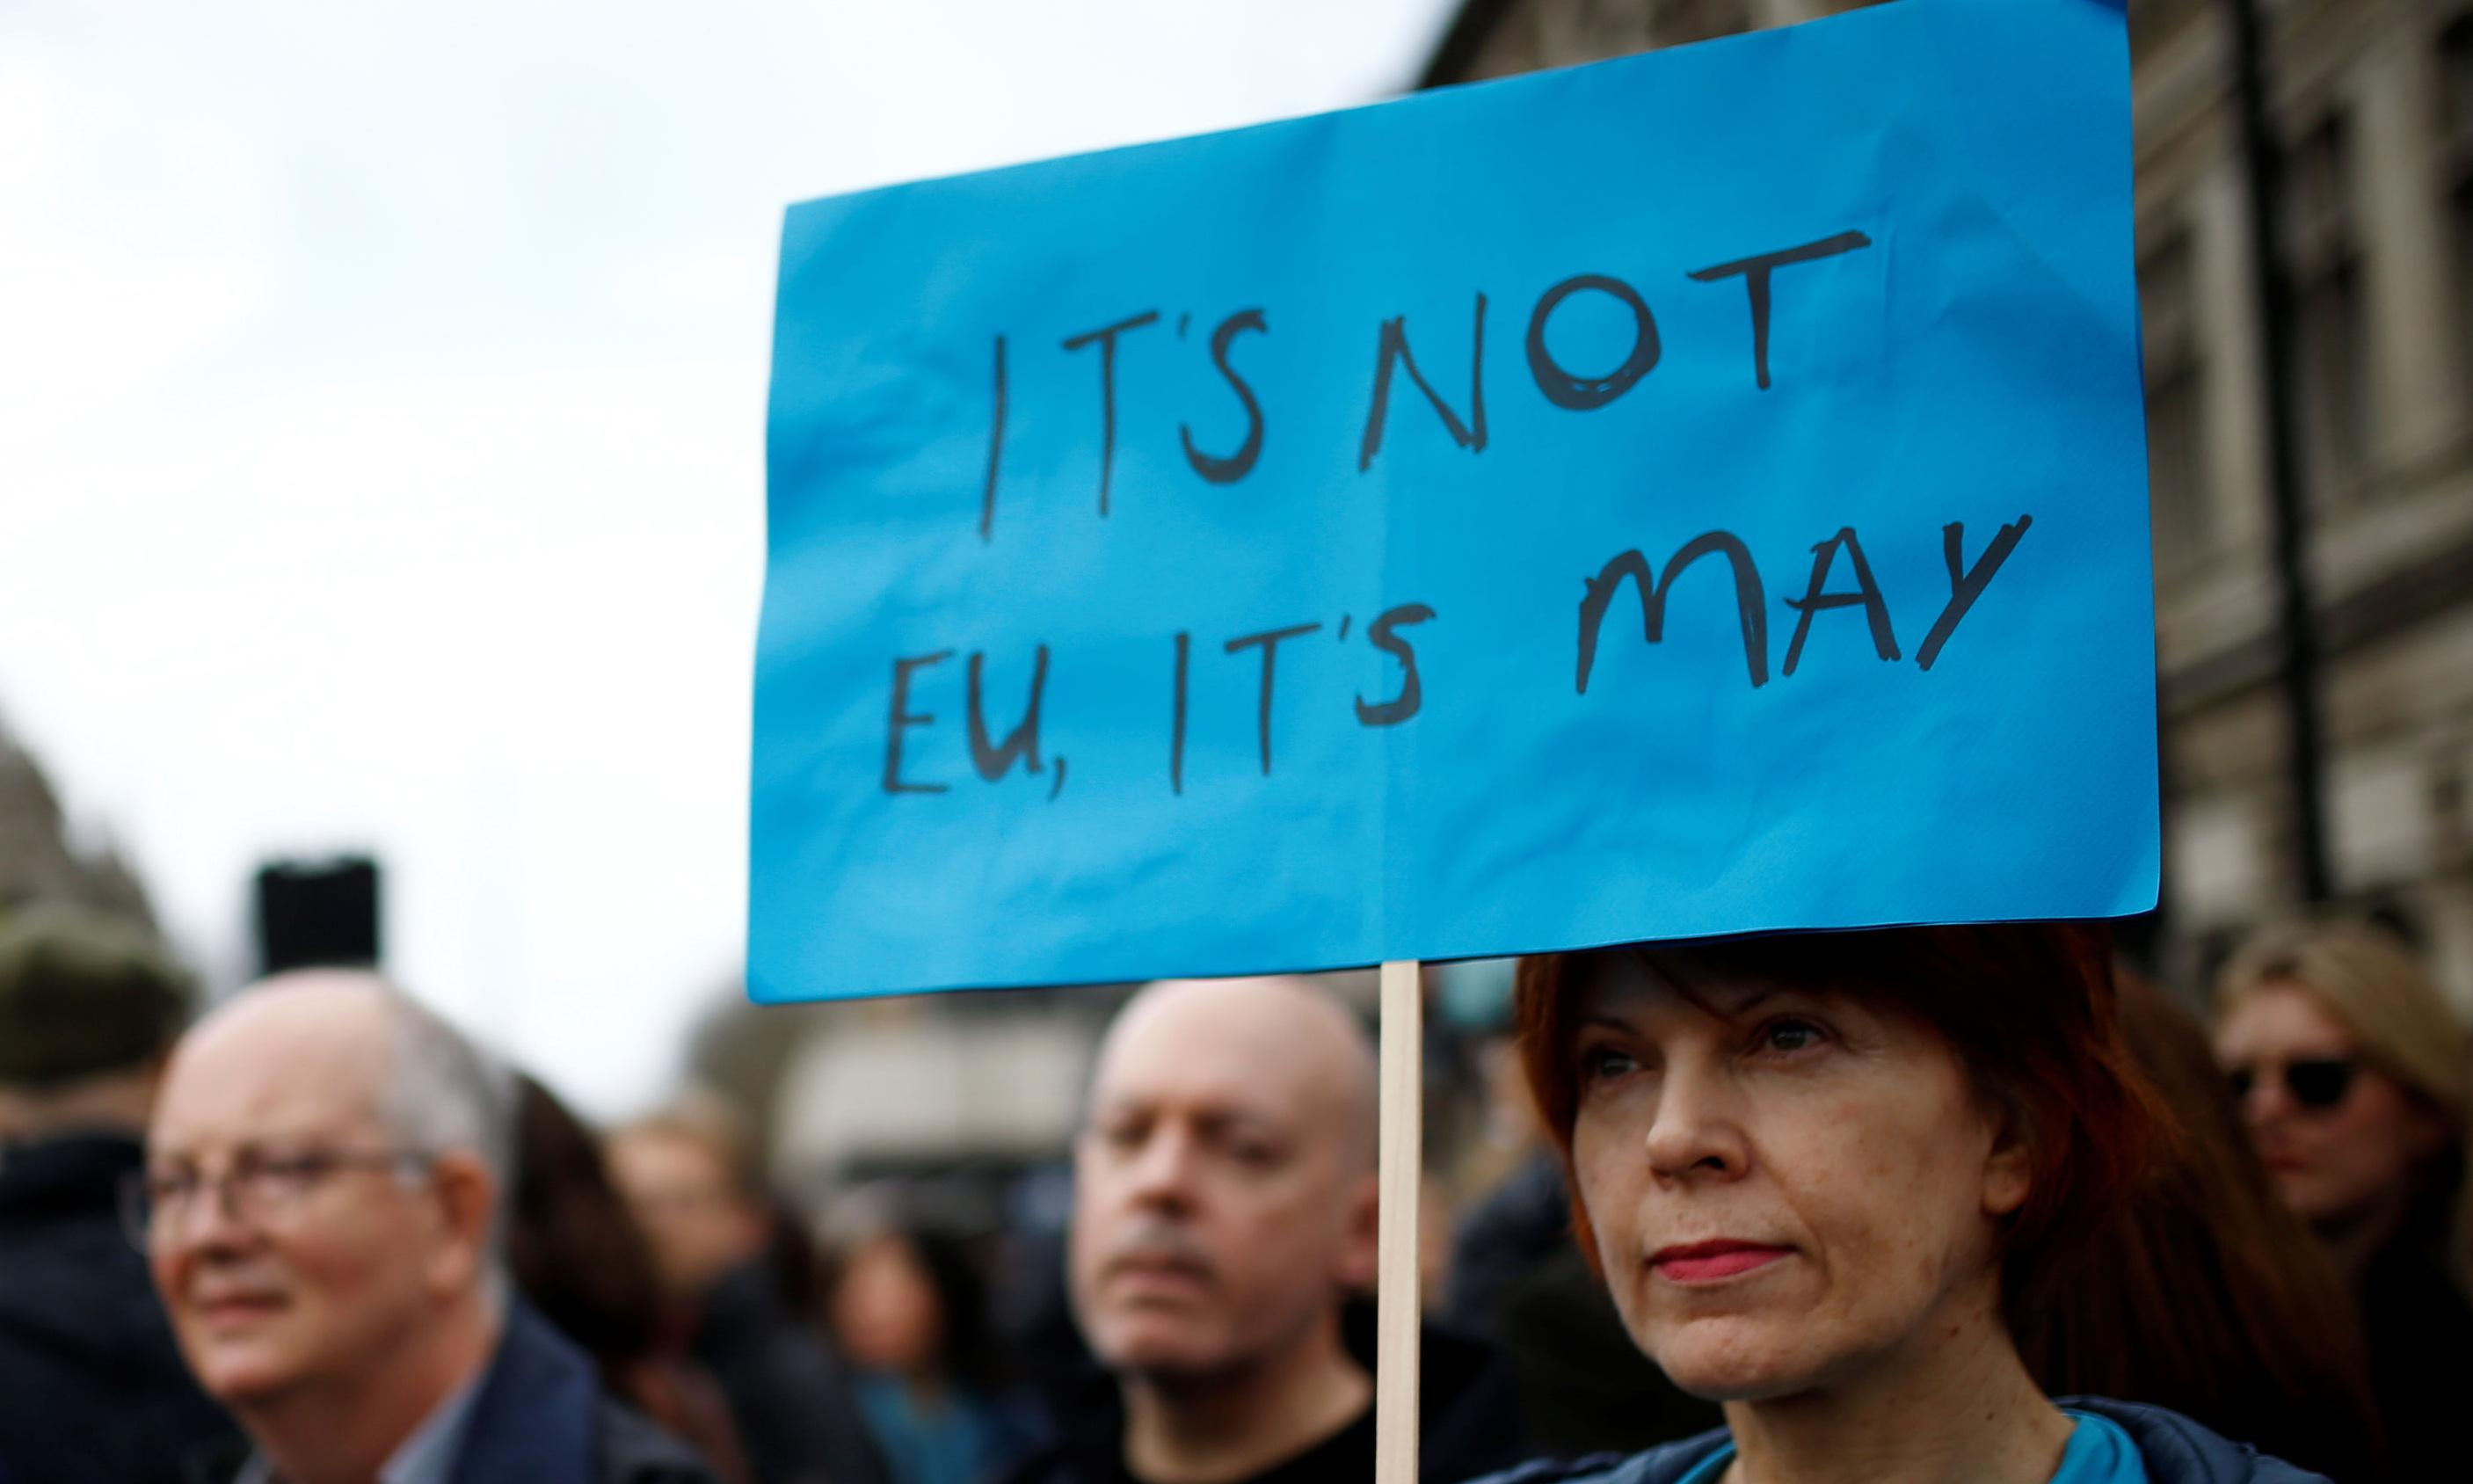 One million join march against Brexit as Tories plan to oust May